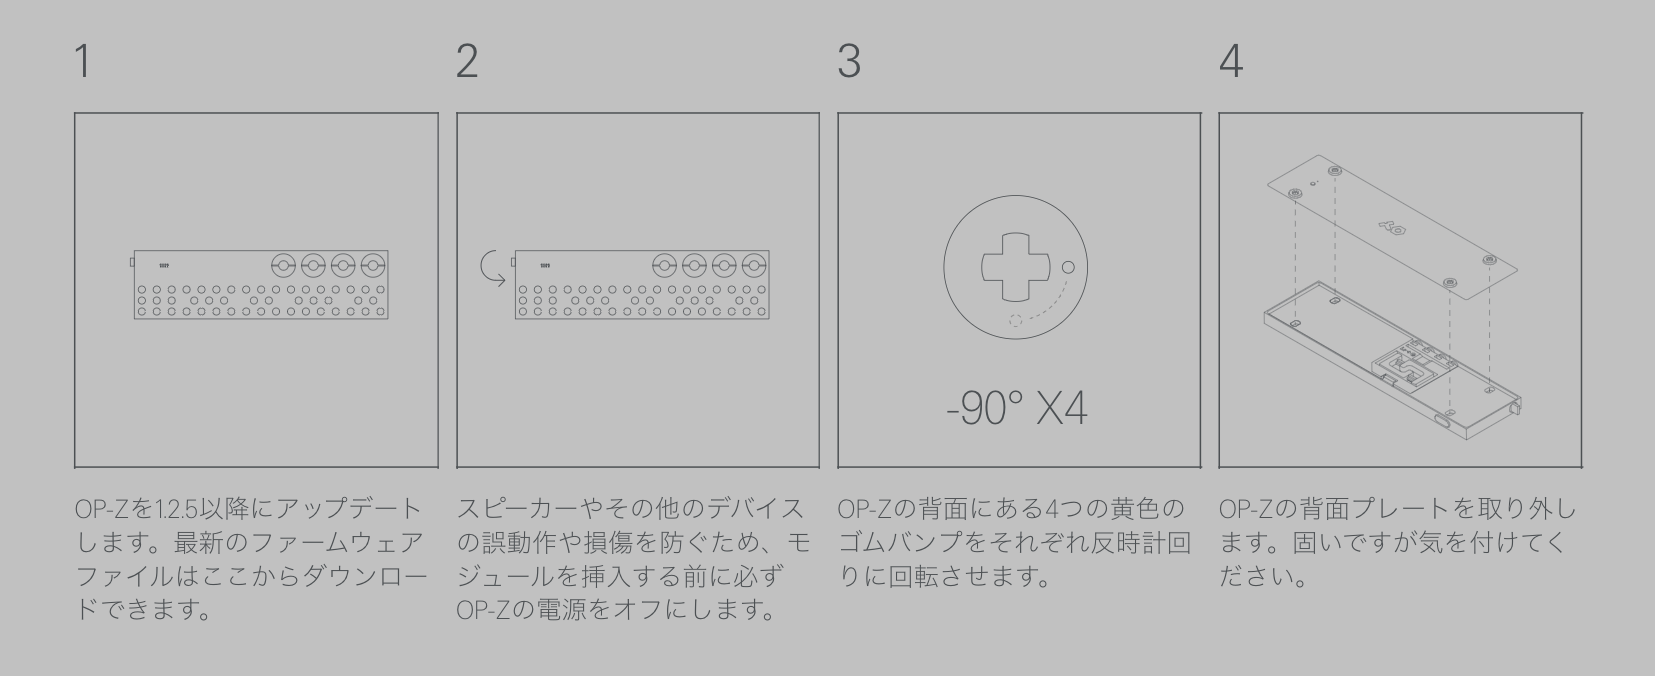 03-rumble_howto1-4